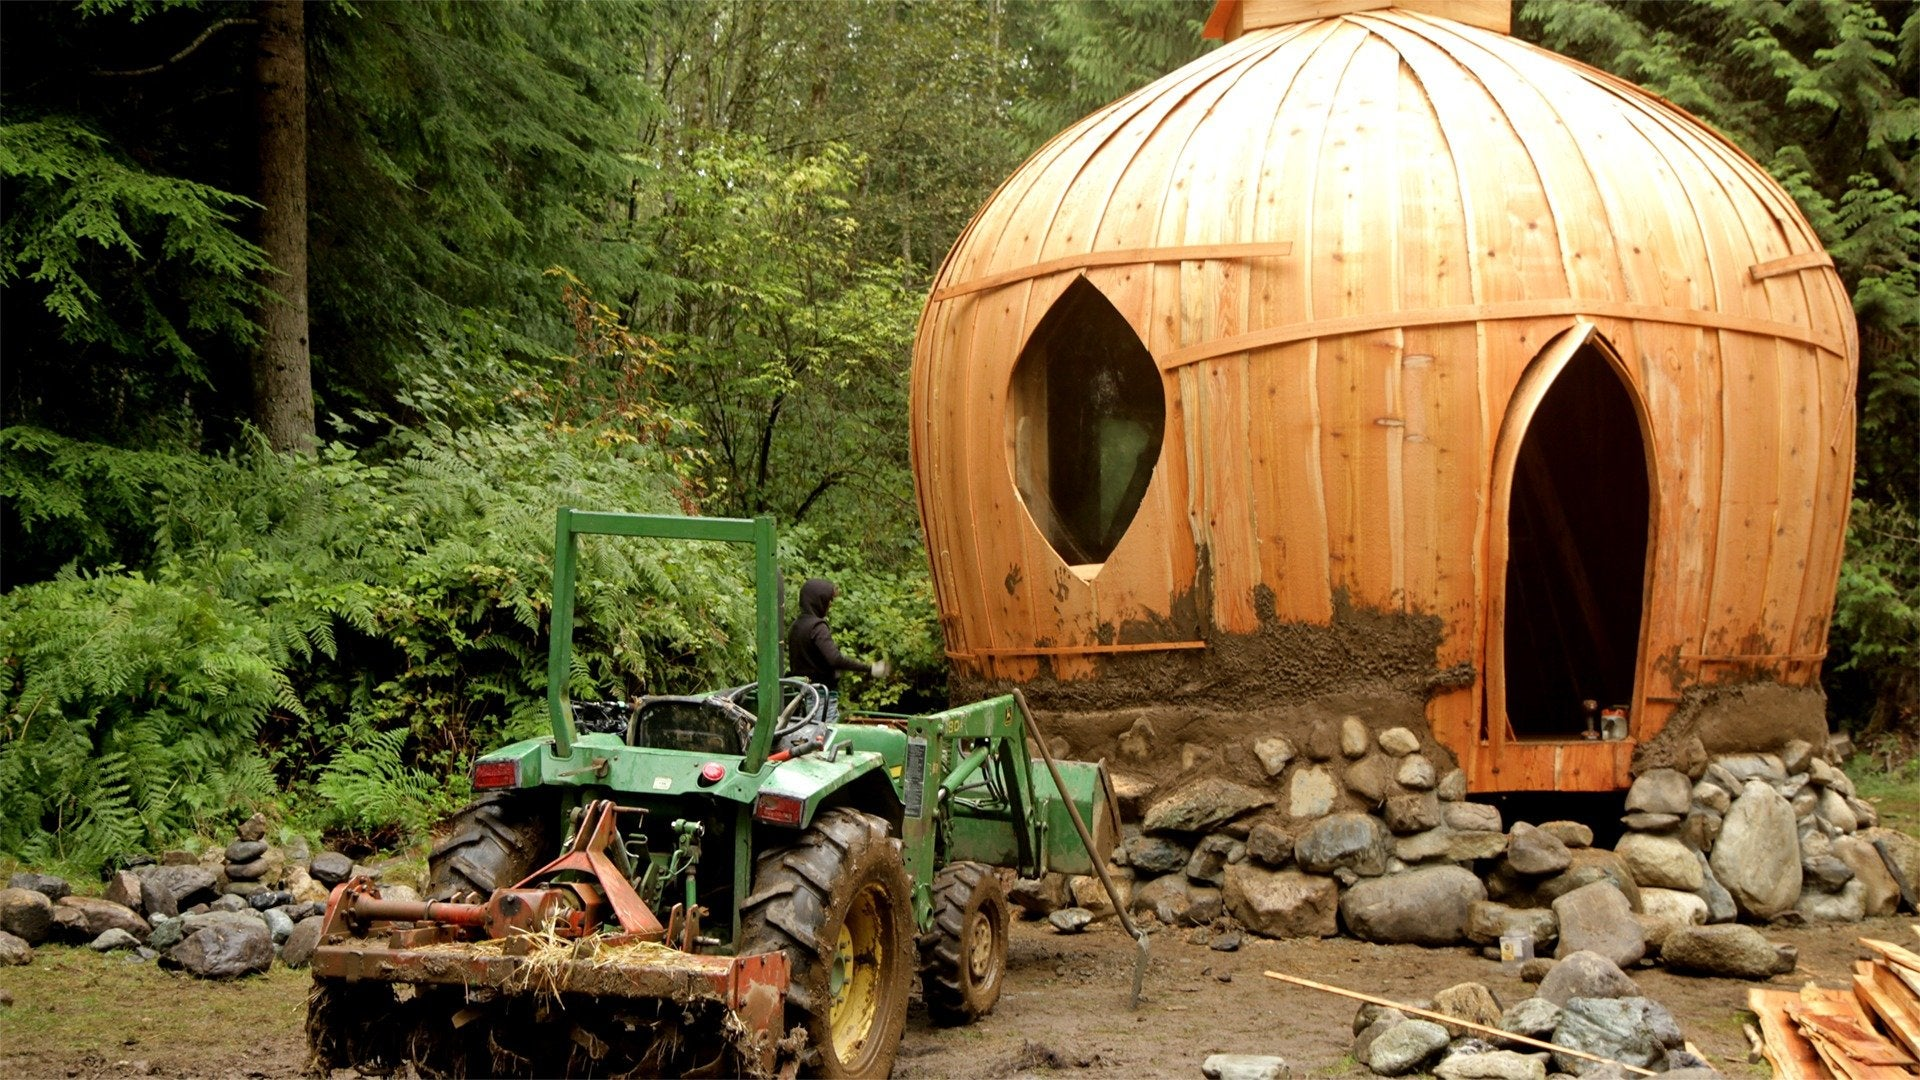 Building Off the Grid: Massive Mud Home